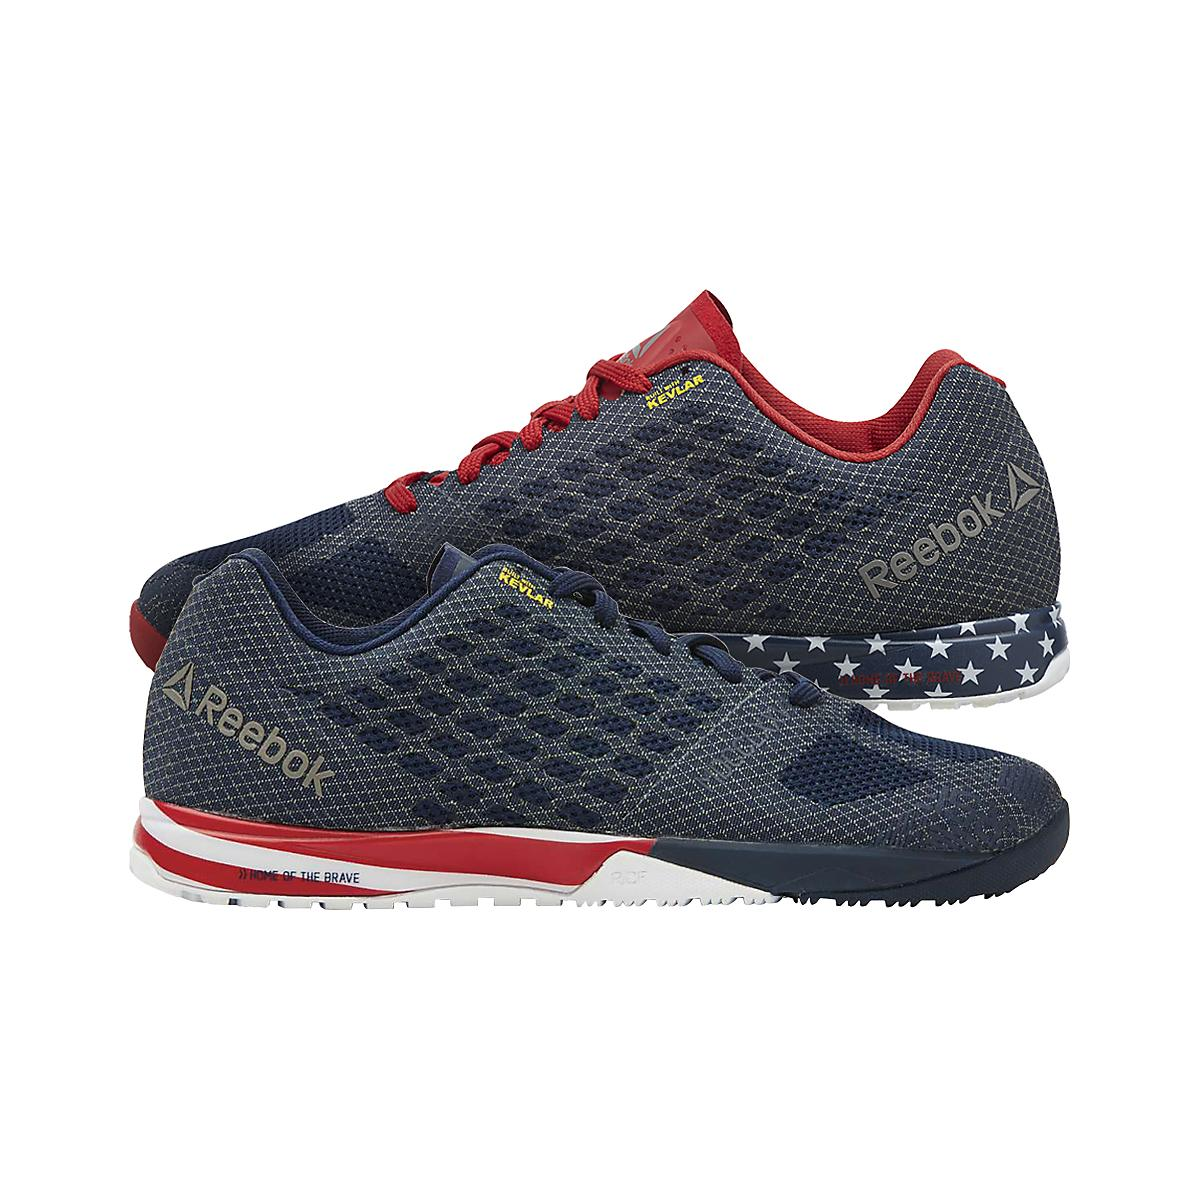 ff14bcfb5998 Mens Reebok CrossFit Nano 5.0 Cross Training Shoe at Road Runner Sports